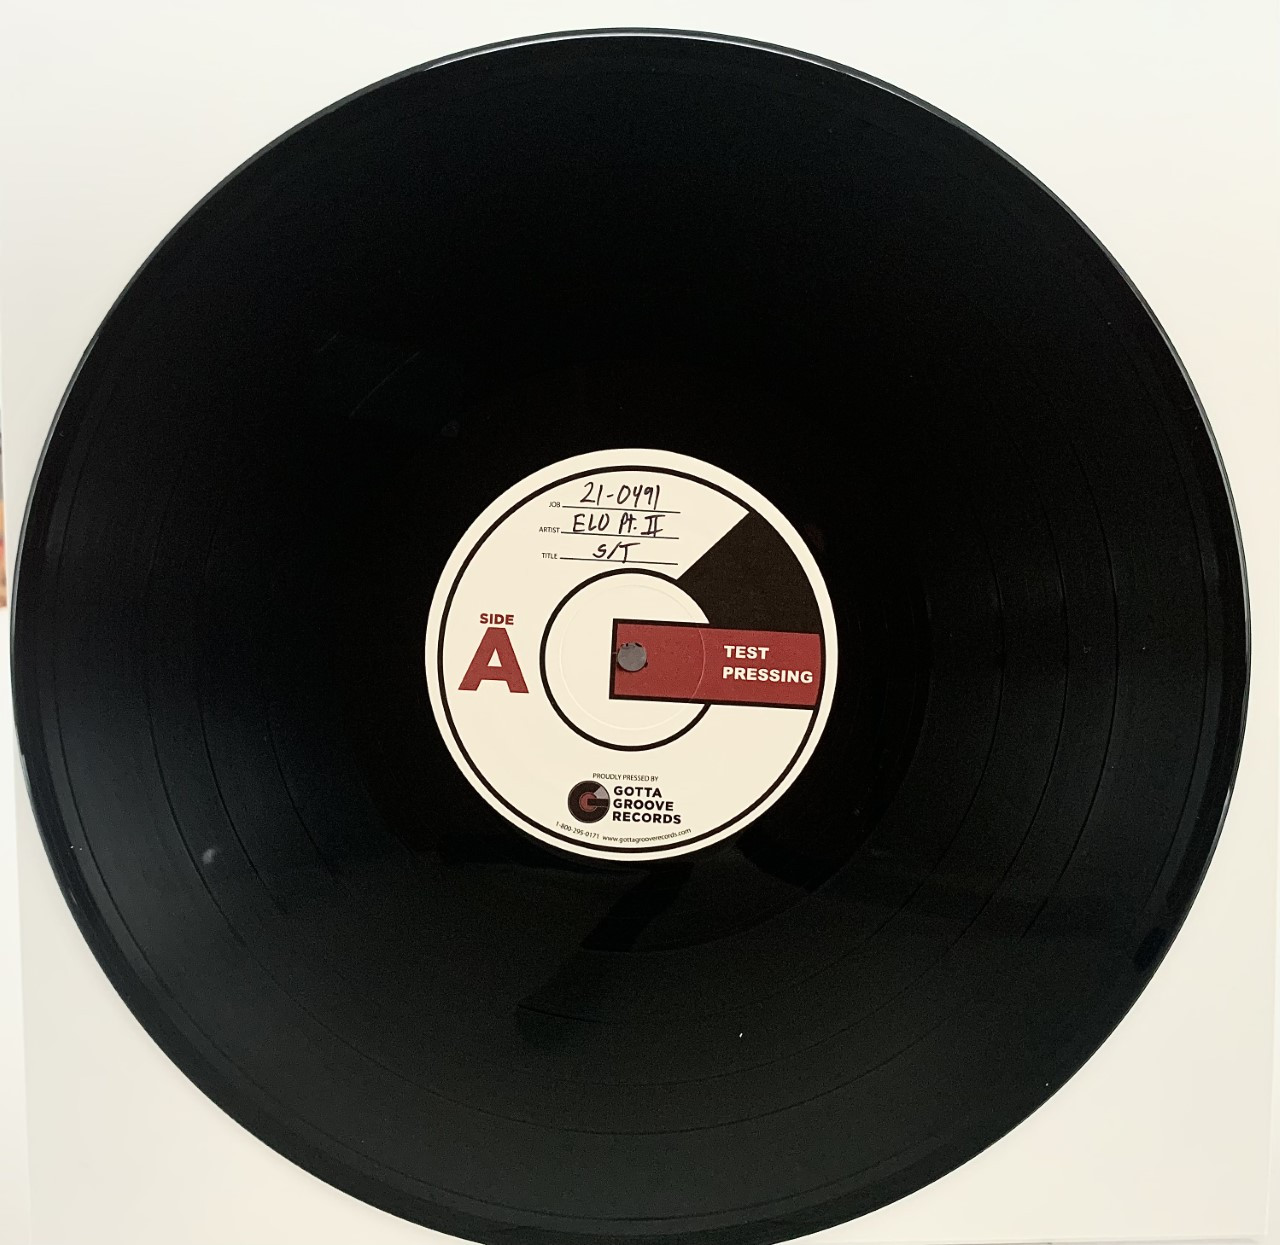 Electric Light Orchestra Part Two by ELO Part Two LP Test Pressing available now.